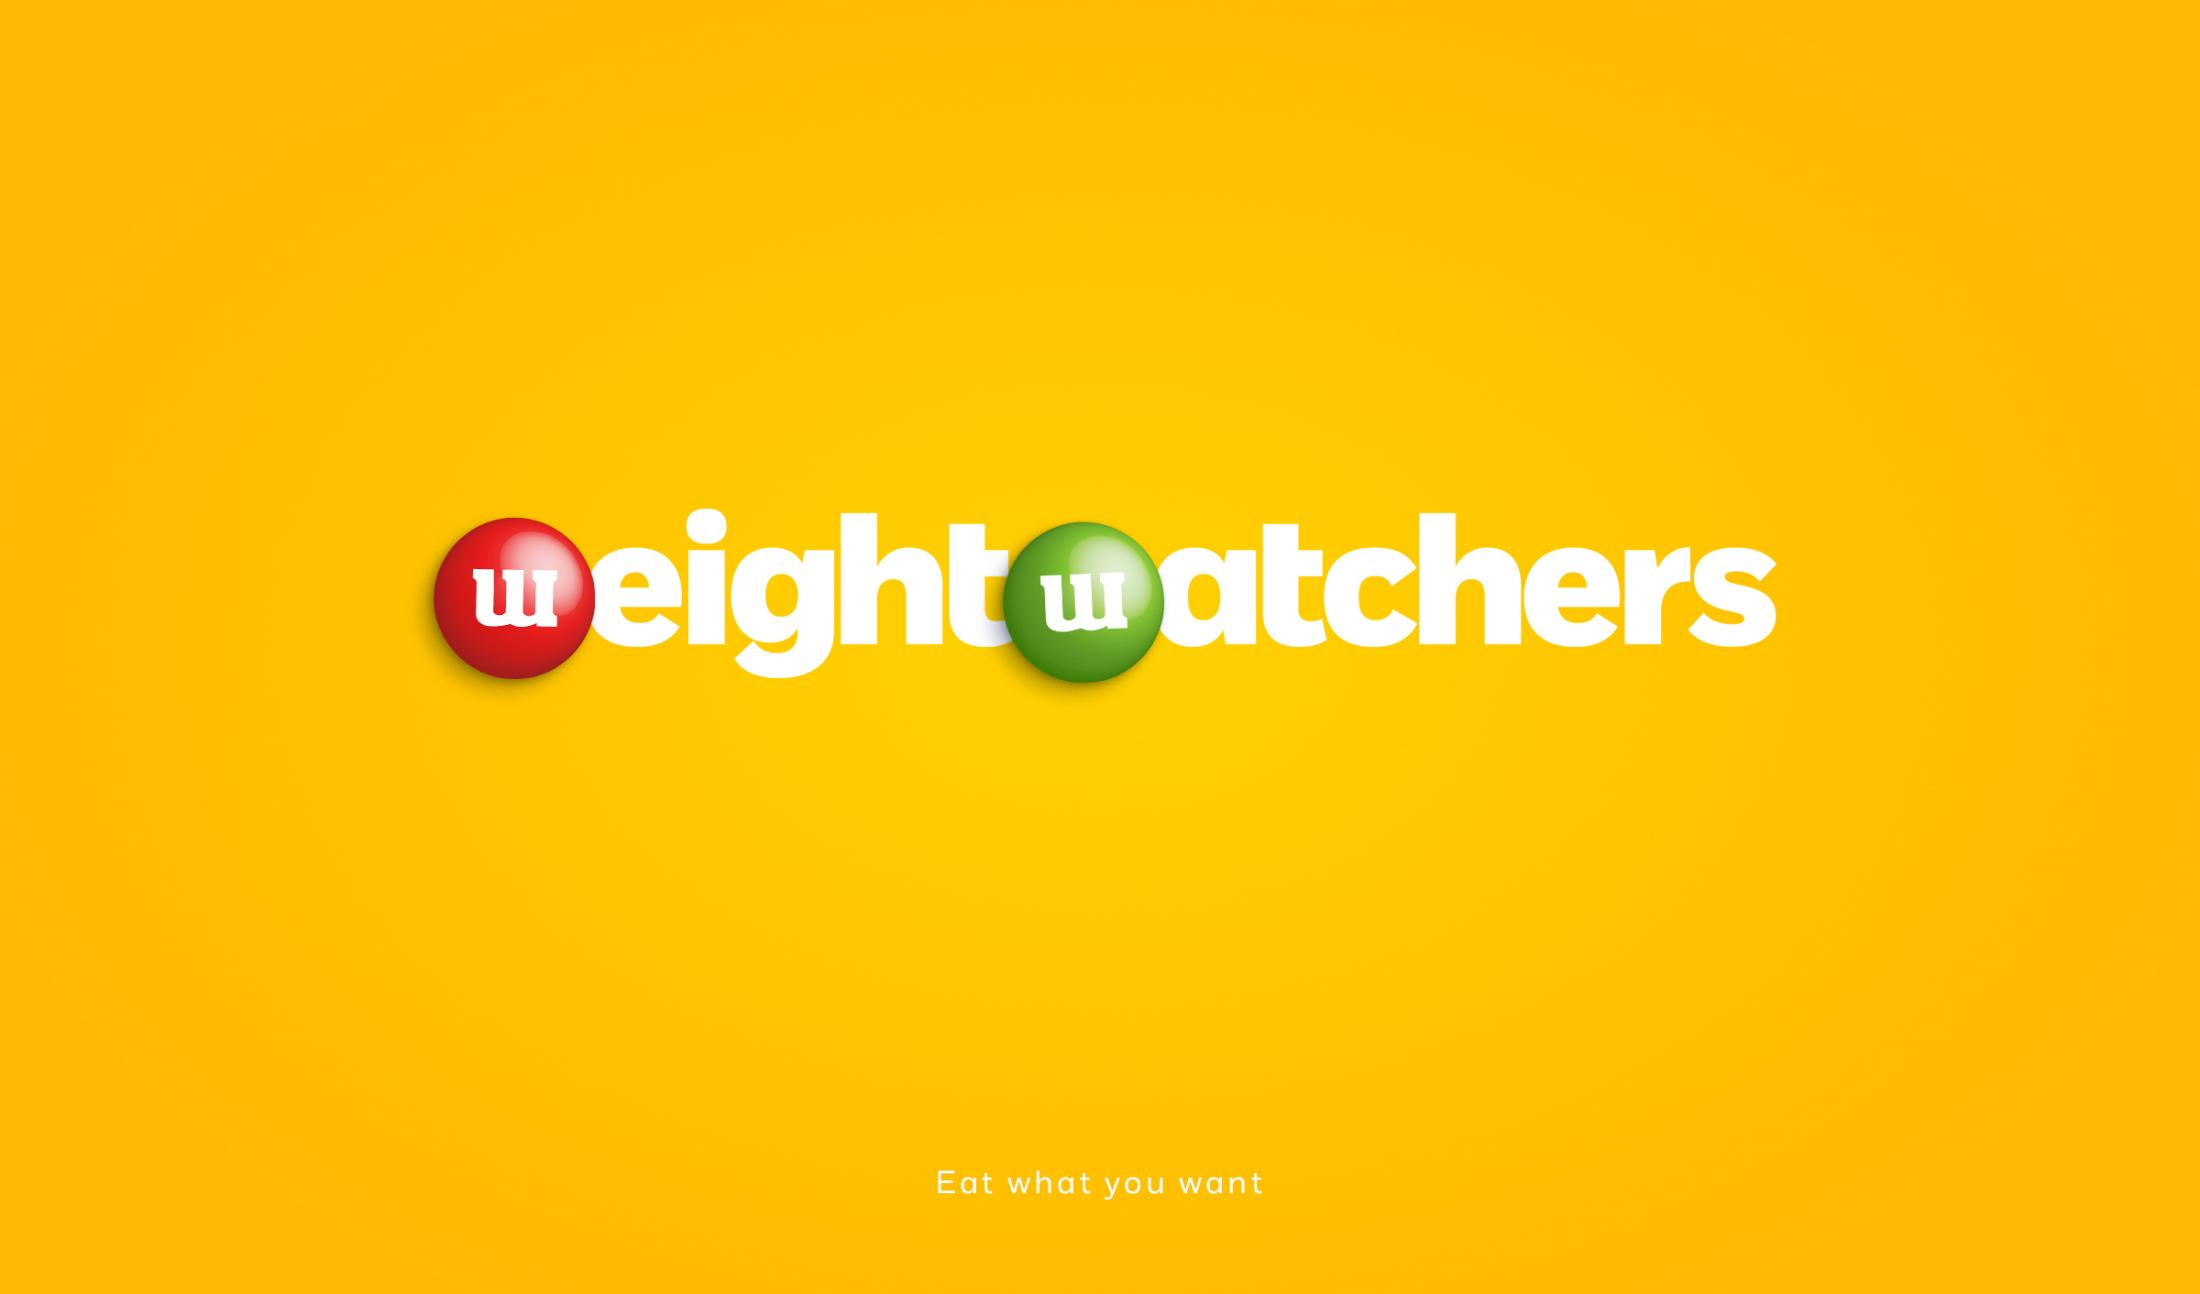 Hop-Hope-actus-weight-watchers